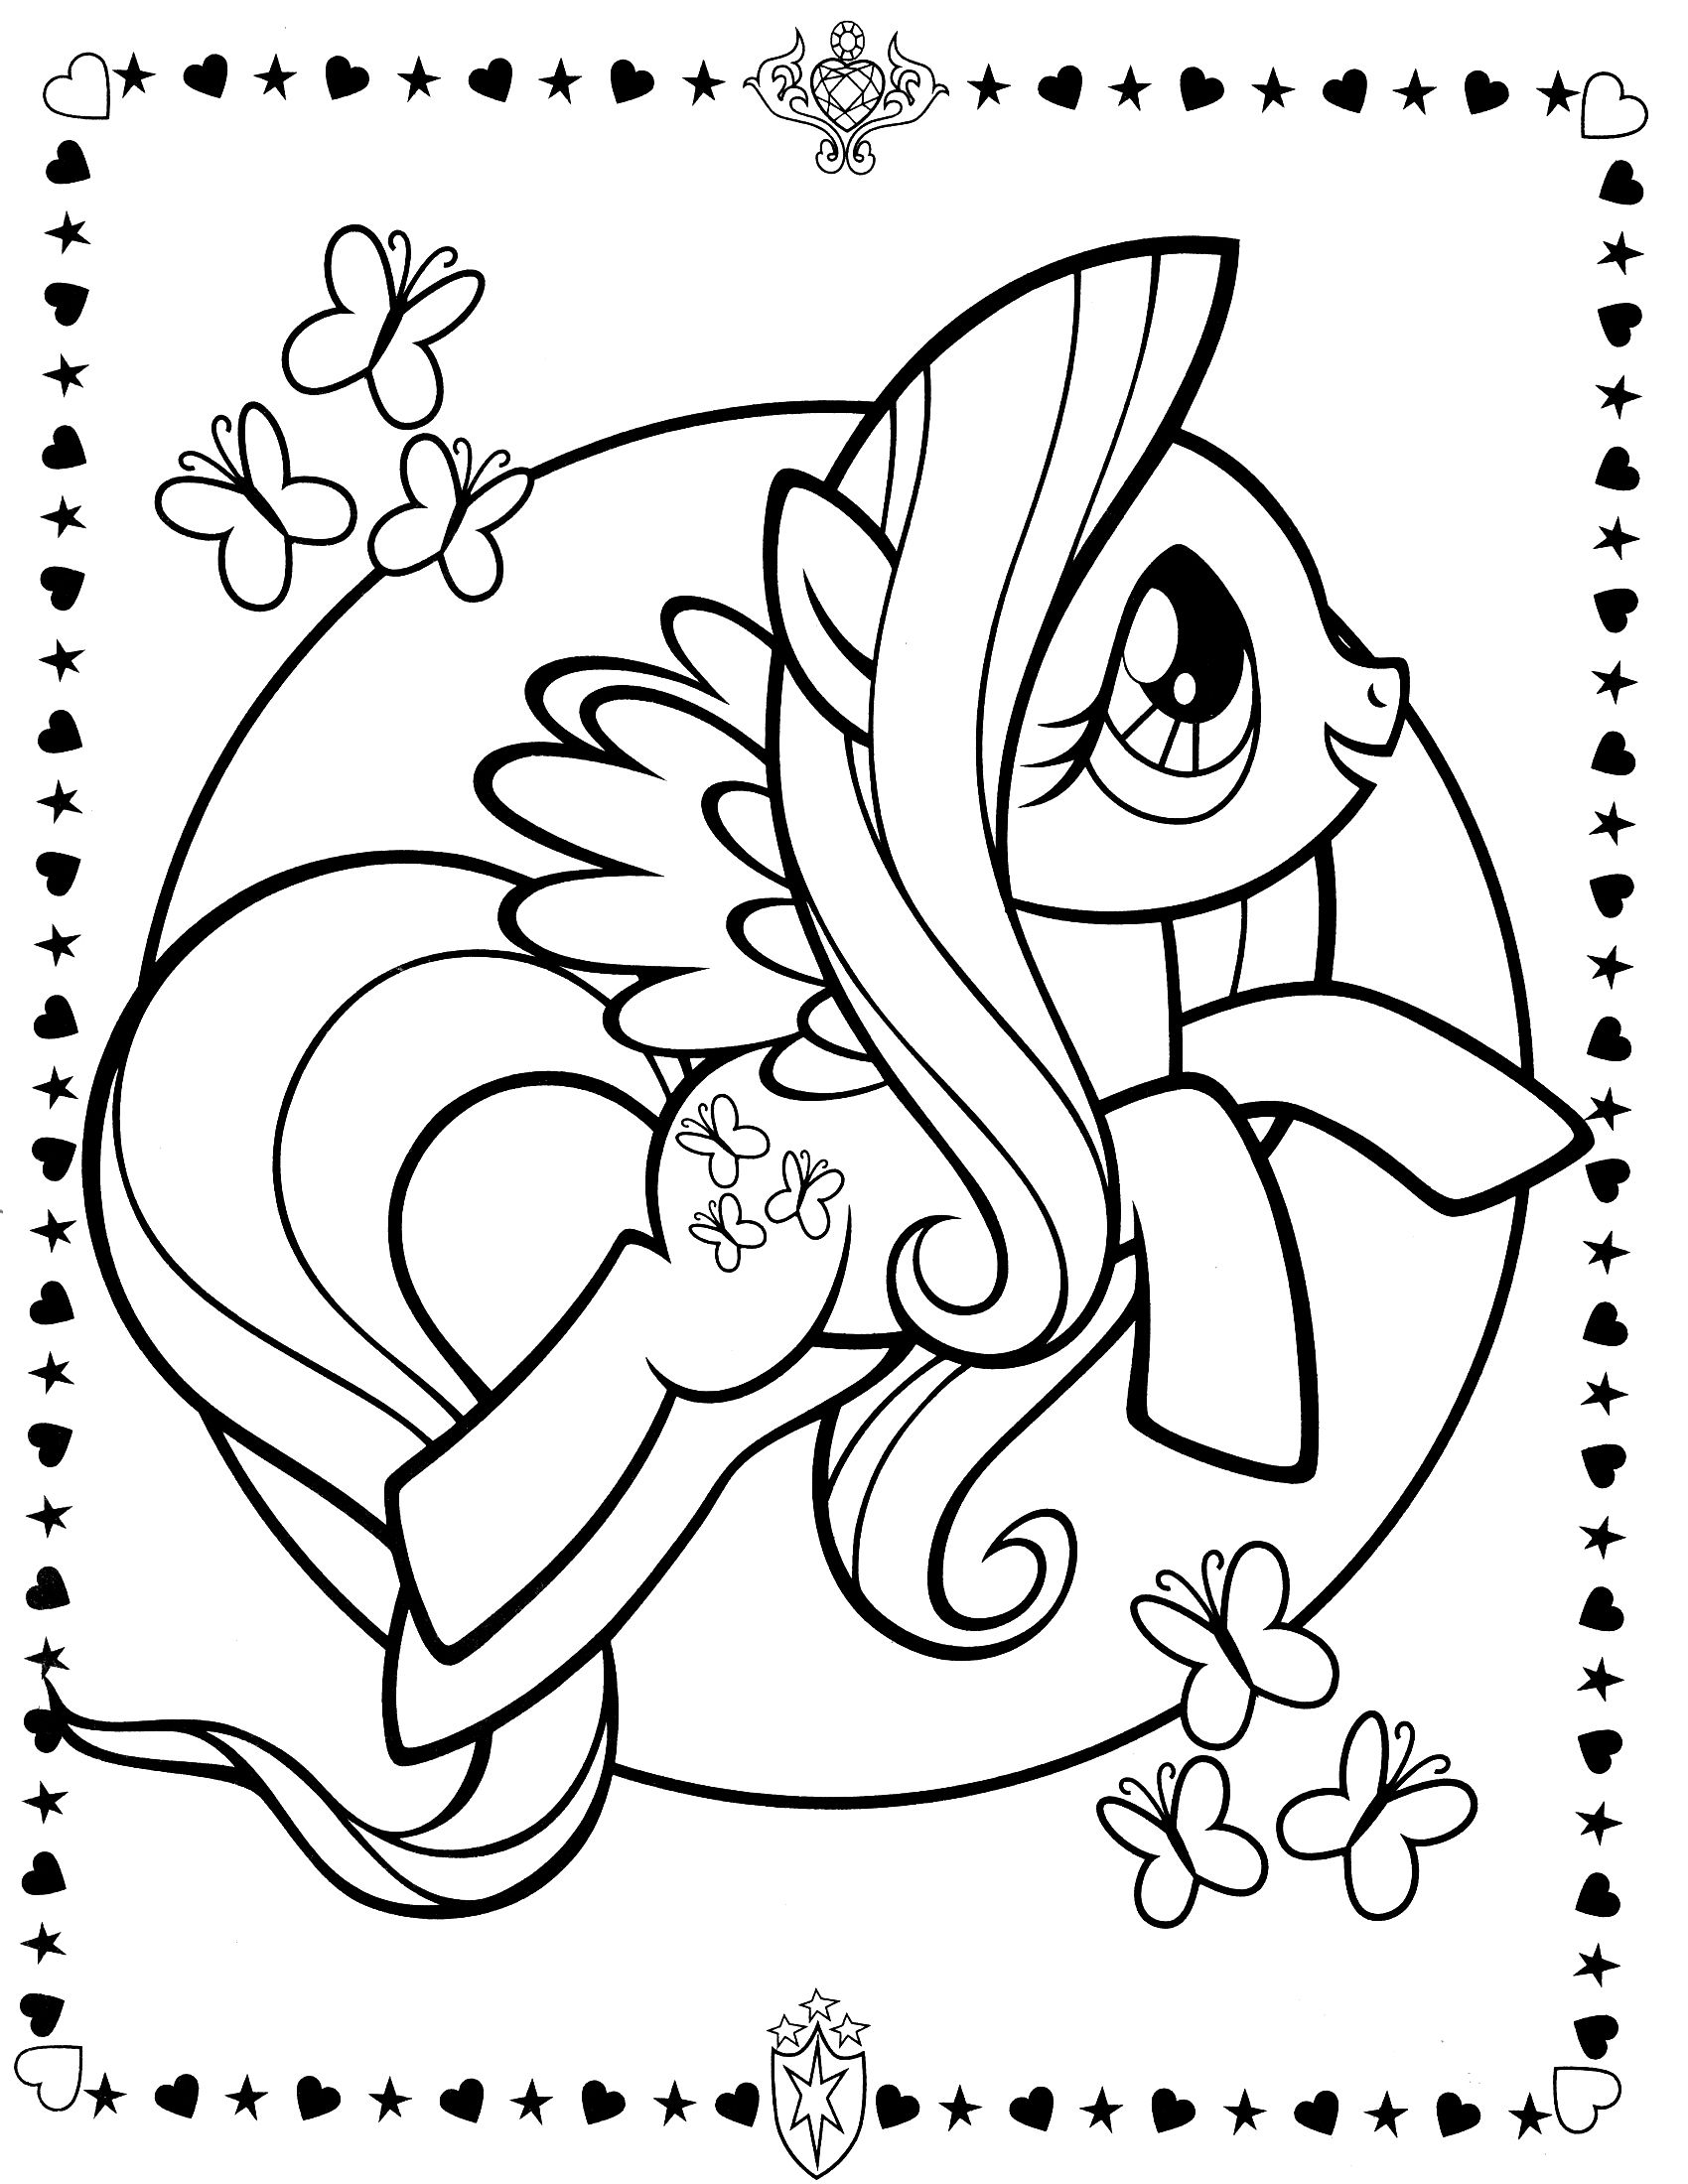 My Little Pony Fluttershy Printable Coloring Pages Images